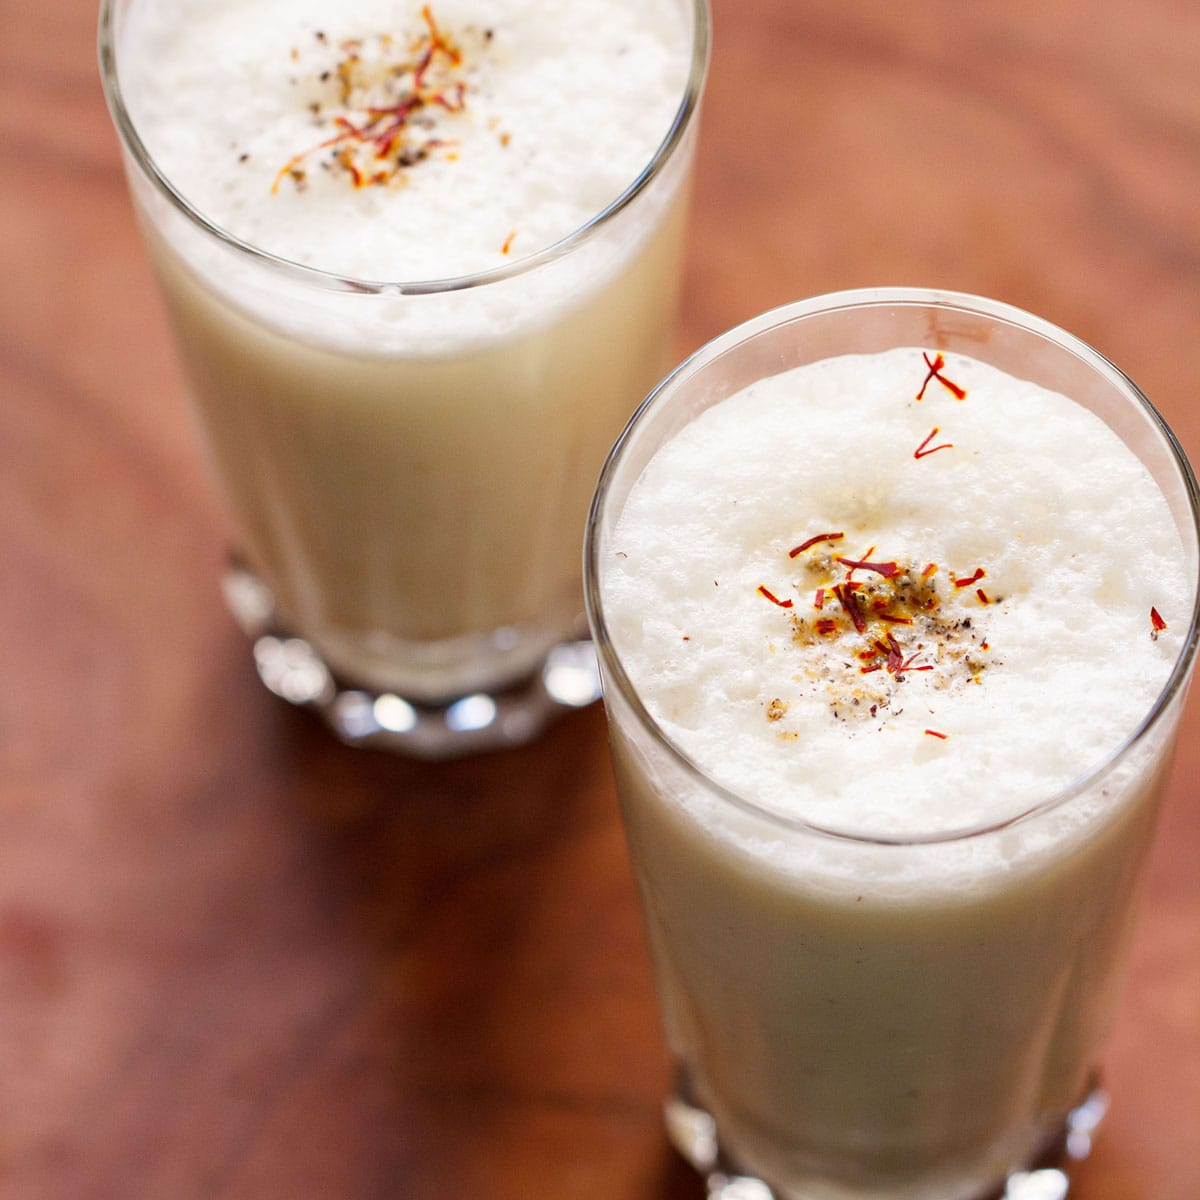 Top shot of two glasses filled with lassi